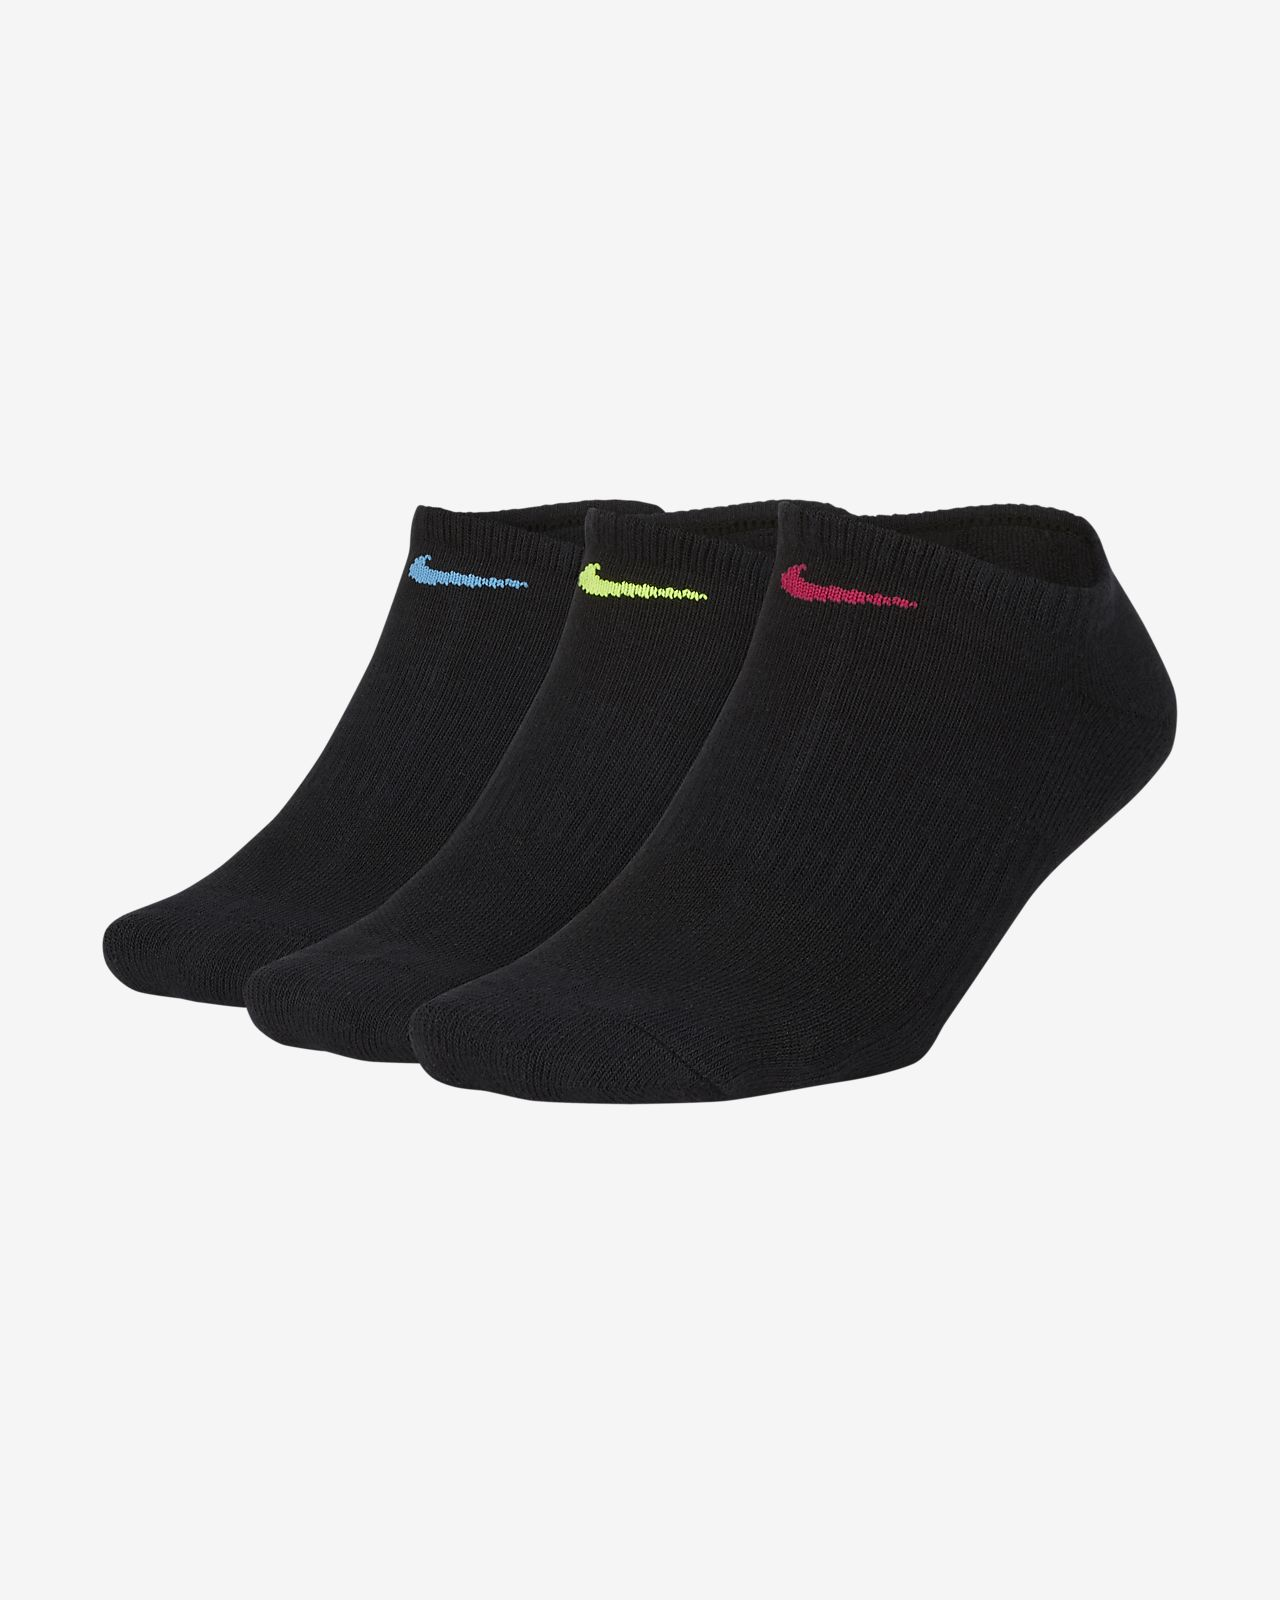 Nike Everyday Cushioned Women's Training No-Show Socks (3 Pairs)